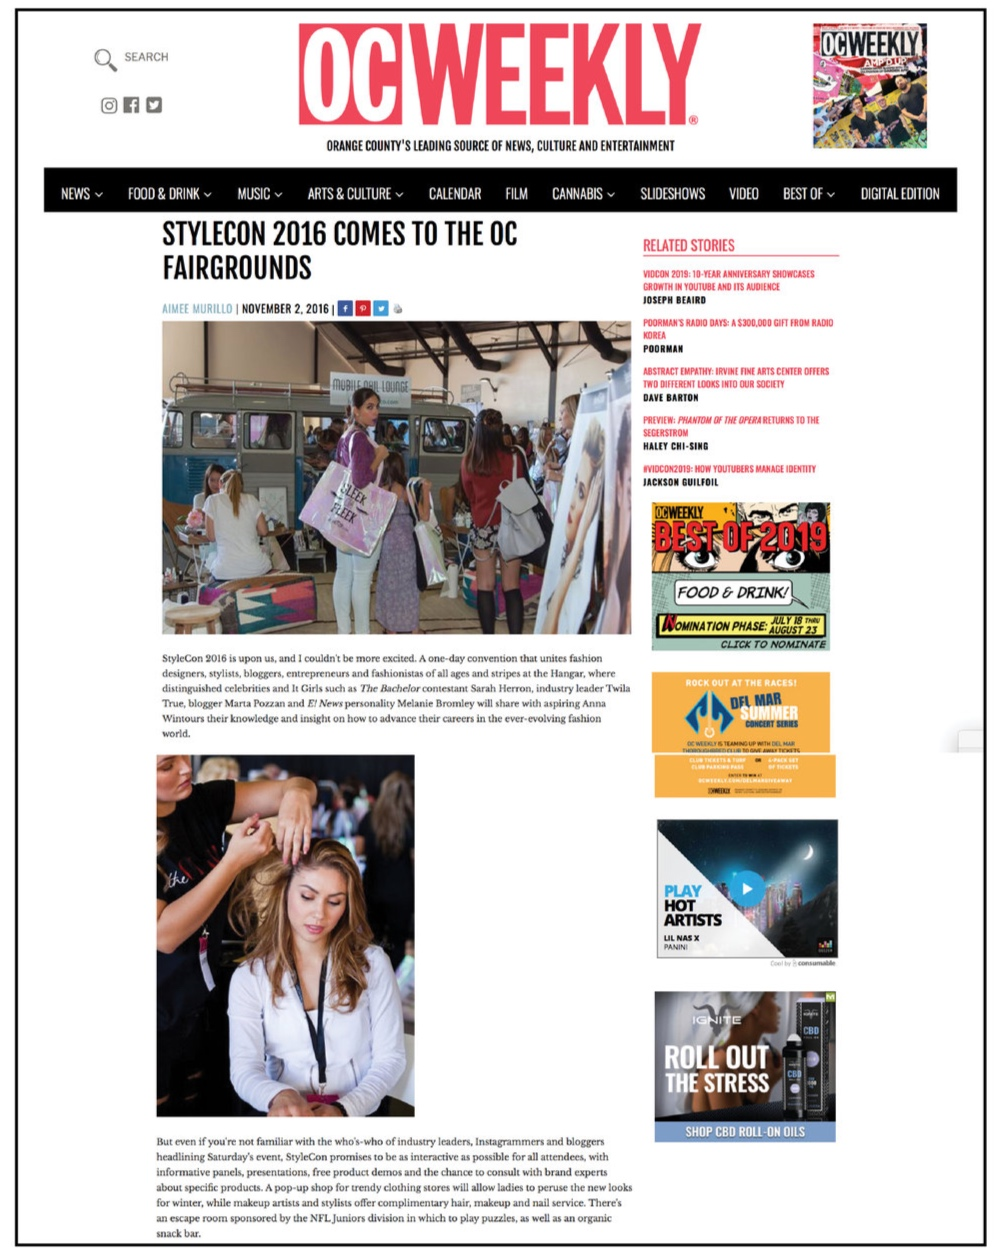 OC Weekly,  November 2016  StyleCon 2016 comes to the OC Fairgrounds